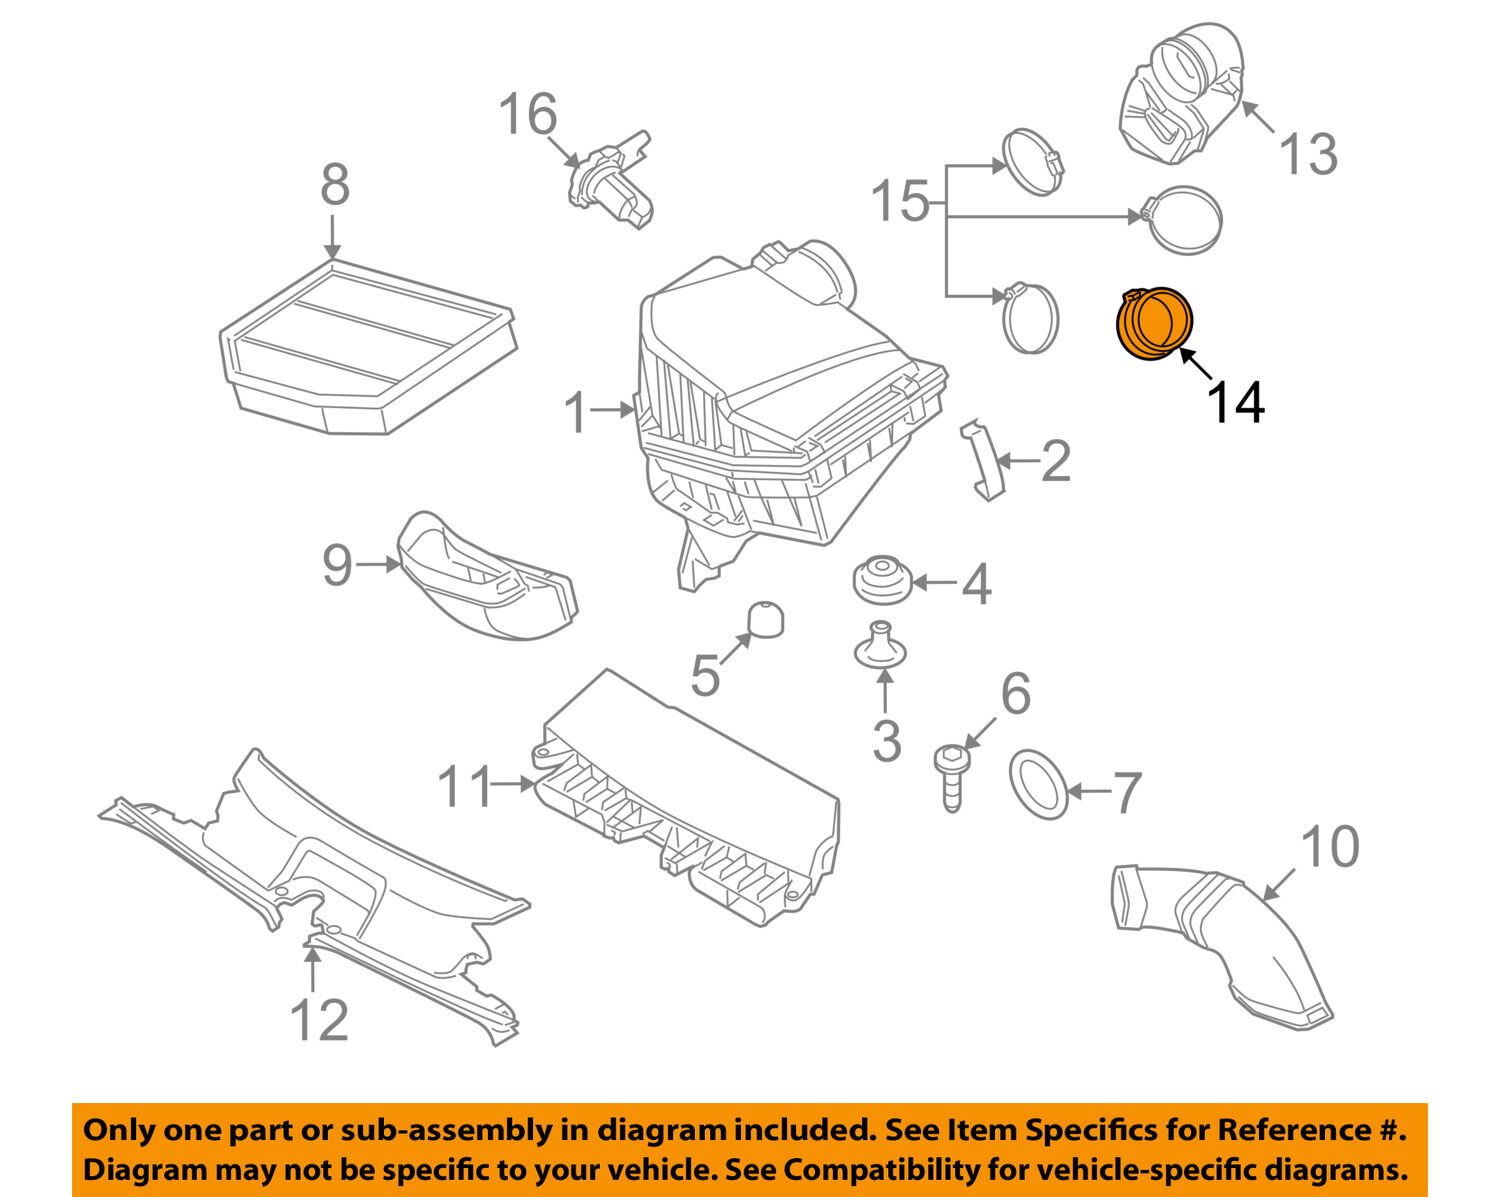 Bmw X3 30l Engine Diagram Trusted Wiring Diagrams L6 Oem 07 10 3 0l Air Cleaner Intake Boot Hose Duct Tube 528i